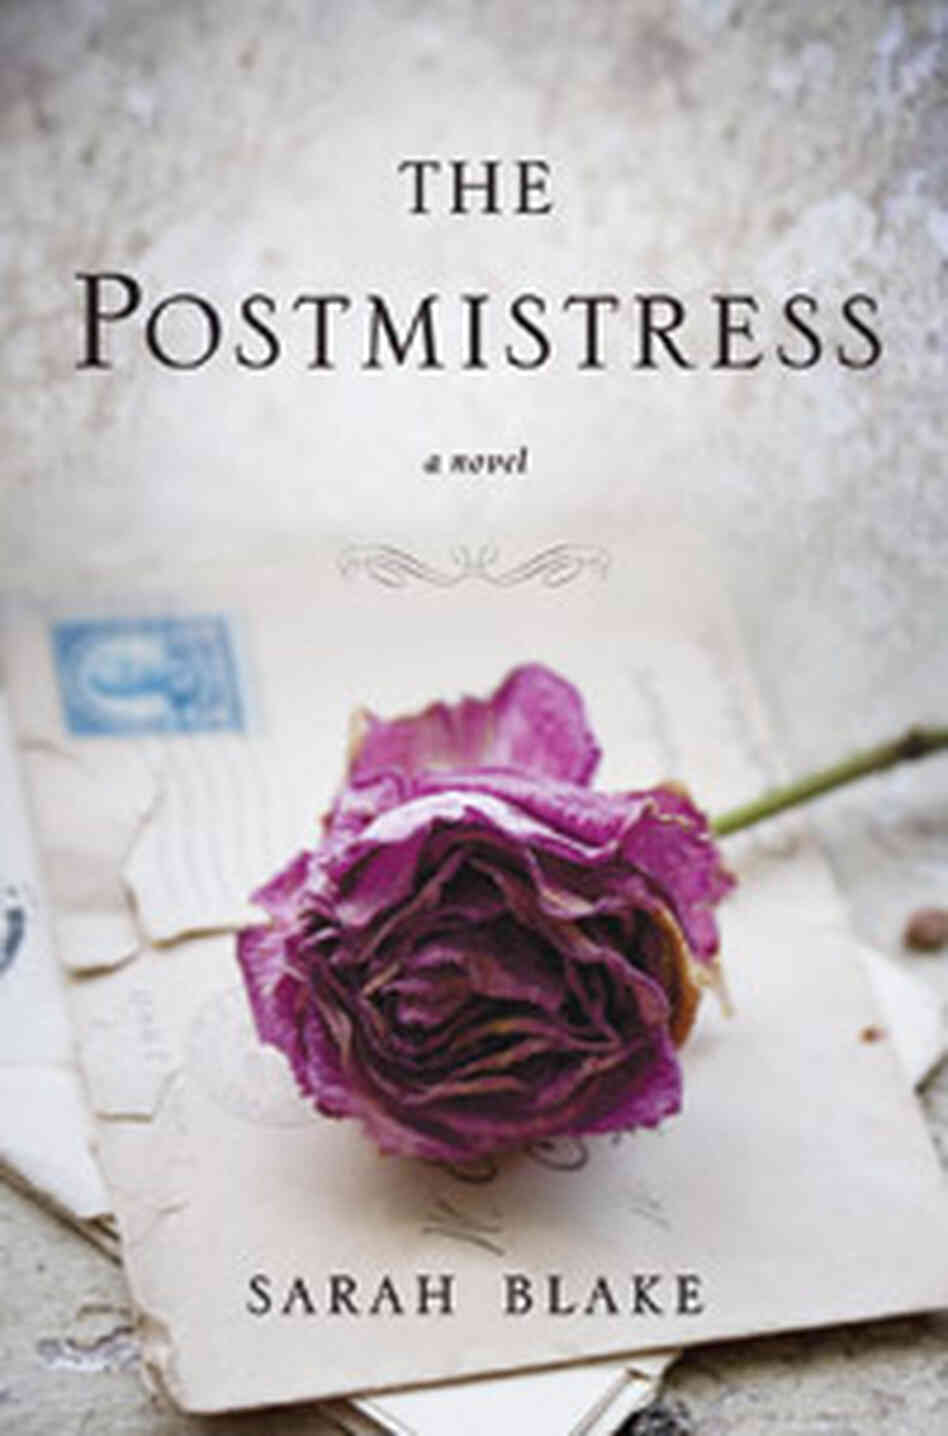 'The Postmistress'